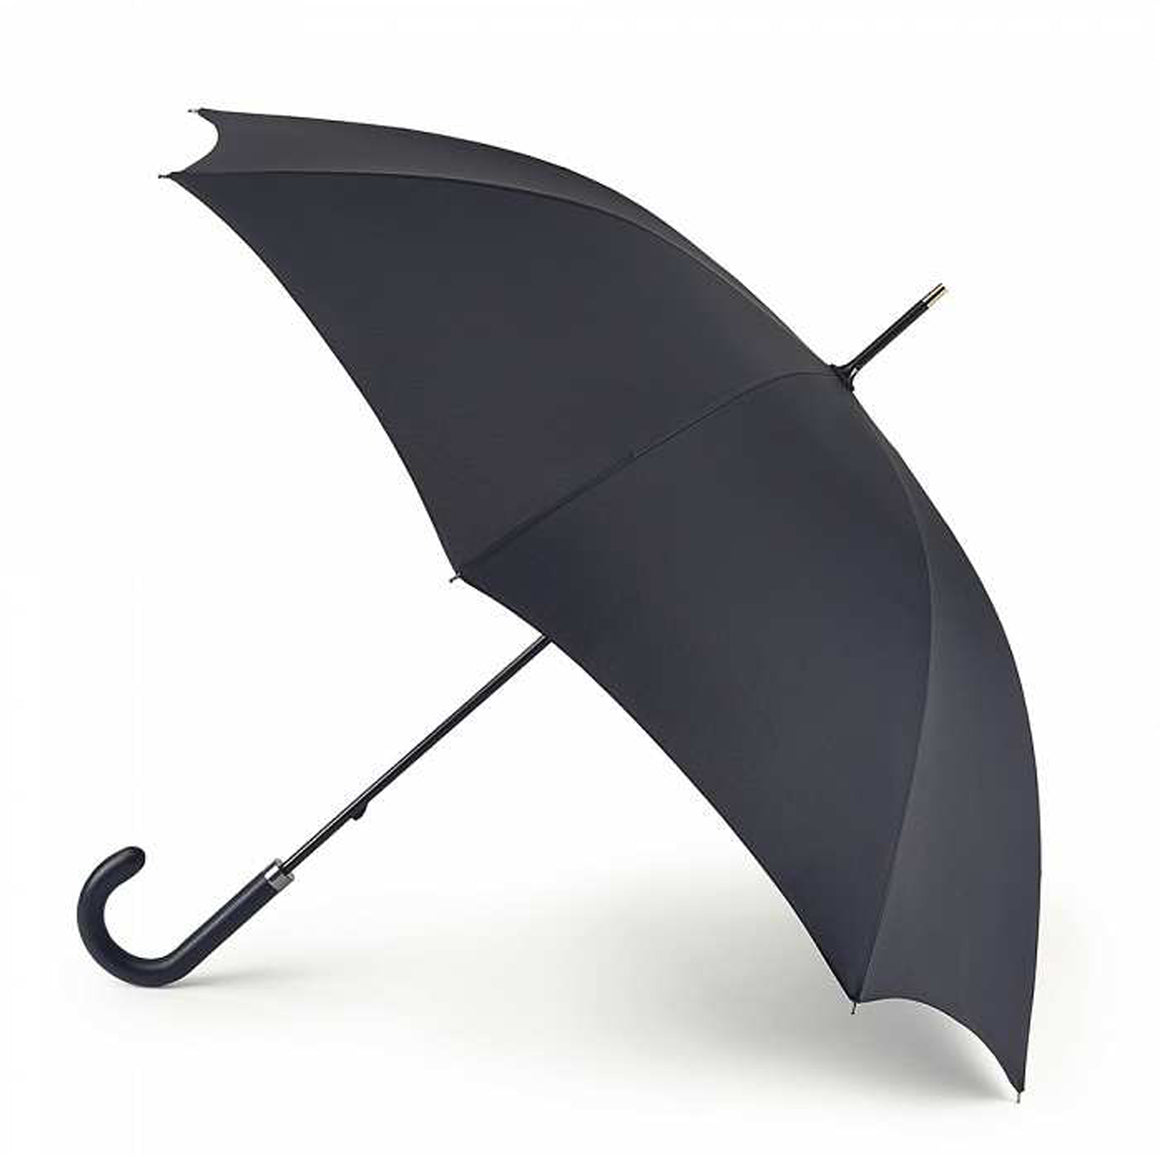 Fulton Governor-1 Umbrella in Black